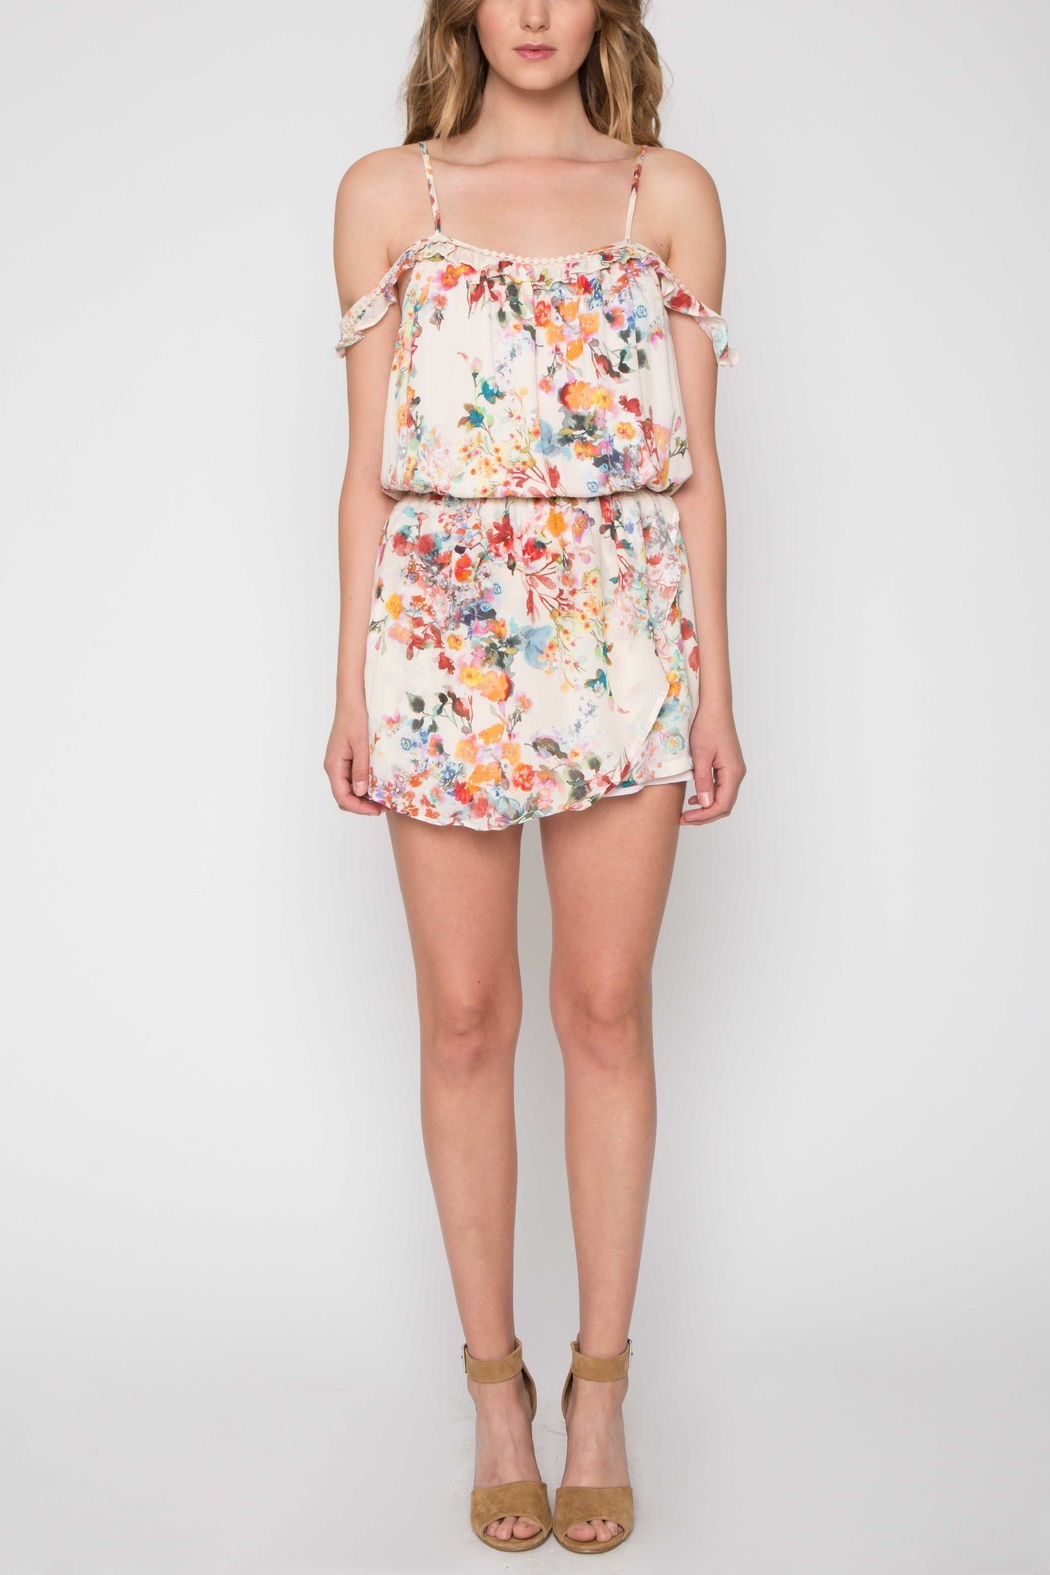 Willow & Clay Floral Daydream Romper - Main Image